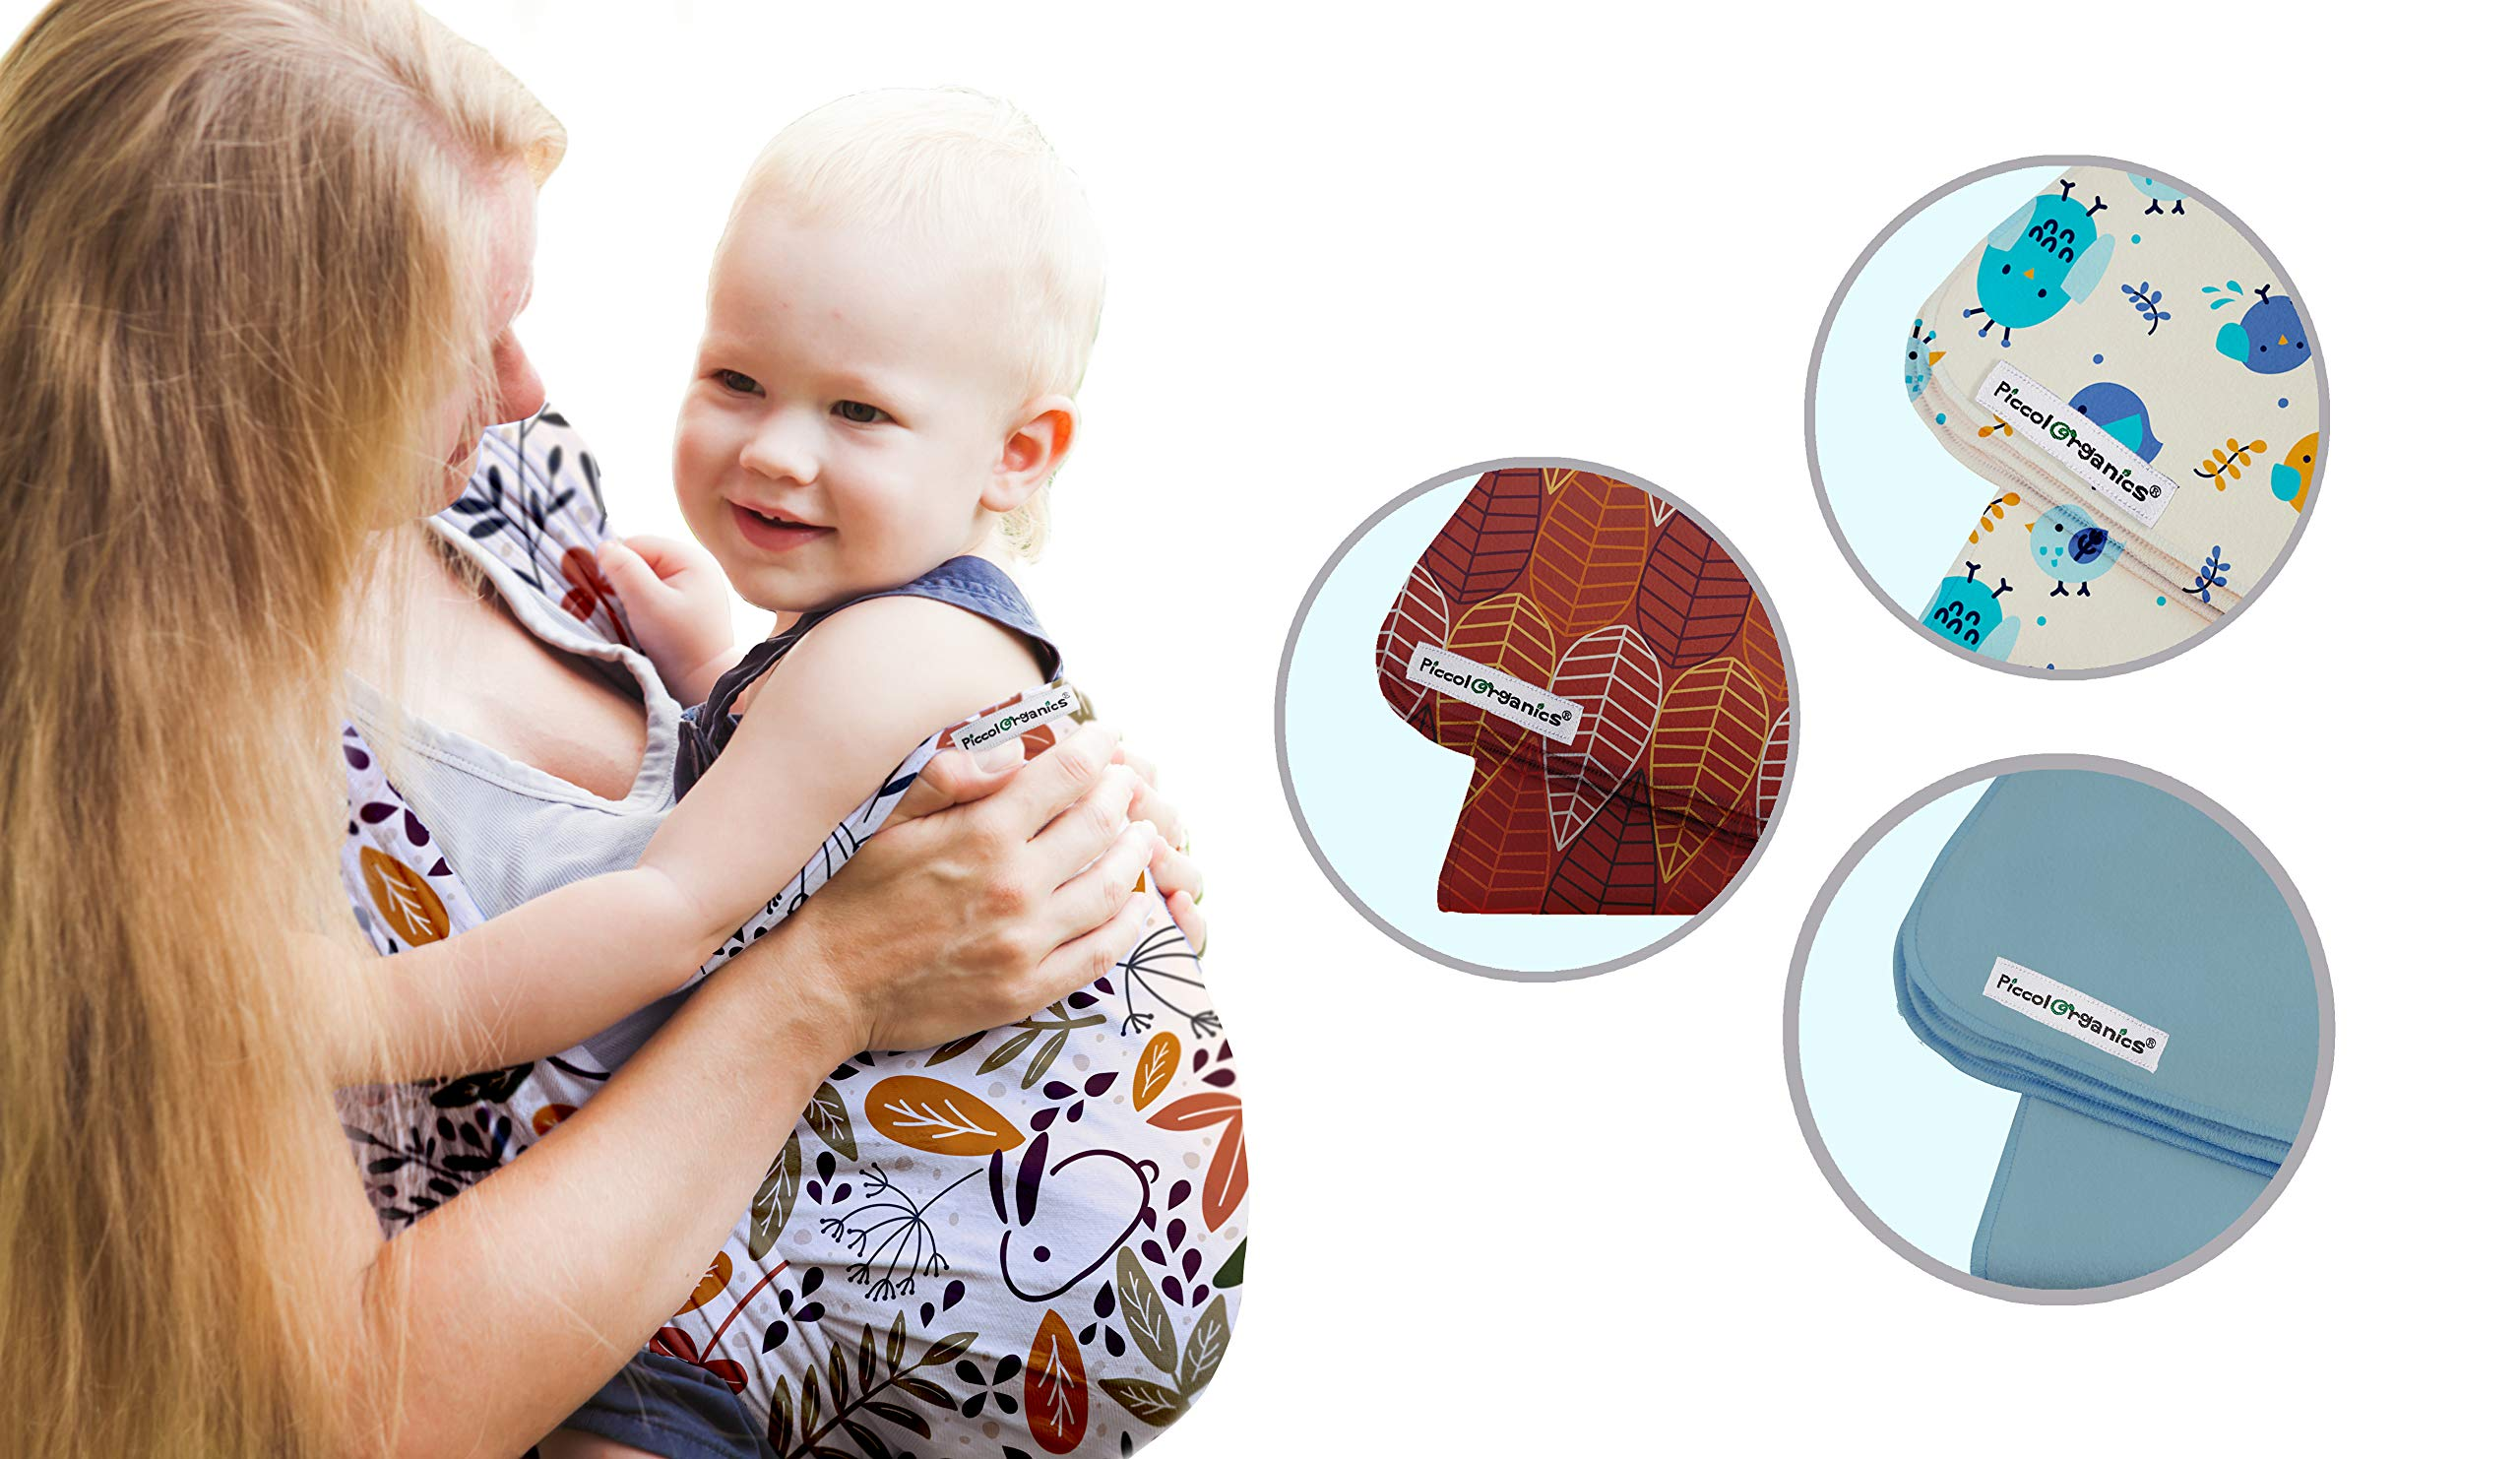 Hypoallergenic GOTS Organic Certified Cotton Baby Wrap Sling Carrier | No Antracene | Certifications: CPSIA, GOTS, CCPA, UK/EU, Safety Tested | Washing & Drying Machine | Newborn | Infant | EU Brand Piccolorganics SAFETY FOR YOUR BABY - The GOTS, CCPA, CPSIA, CPC and Weight Safety Certifications. Assures you that the PiccolOrganics baby wrap is the safest for your baby. SKIN FRIENDLY - The soft natural organic fabric is hypoallergenic, skin friendly and breathable. Excellent for the soft skin of your baby.- Unlike other baby carrier, NO anthracene or strontium chromium is used, which is a carcinogen. COMFORT - The excellent elasticity proportion and the baby wrap length makes your back feel rested. Special  shape design for no uncomfortable excess fabric. 1